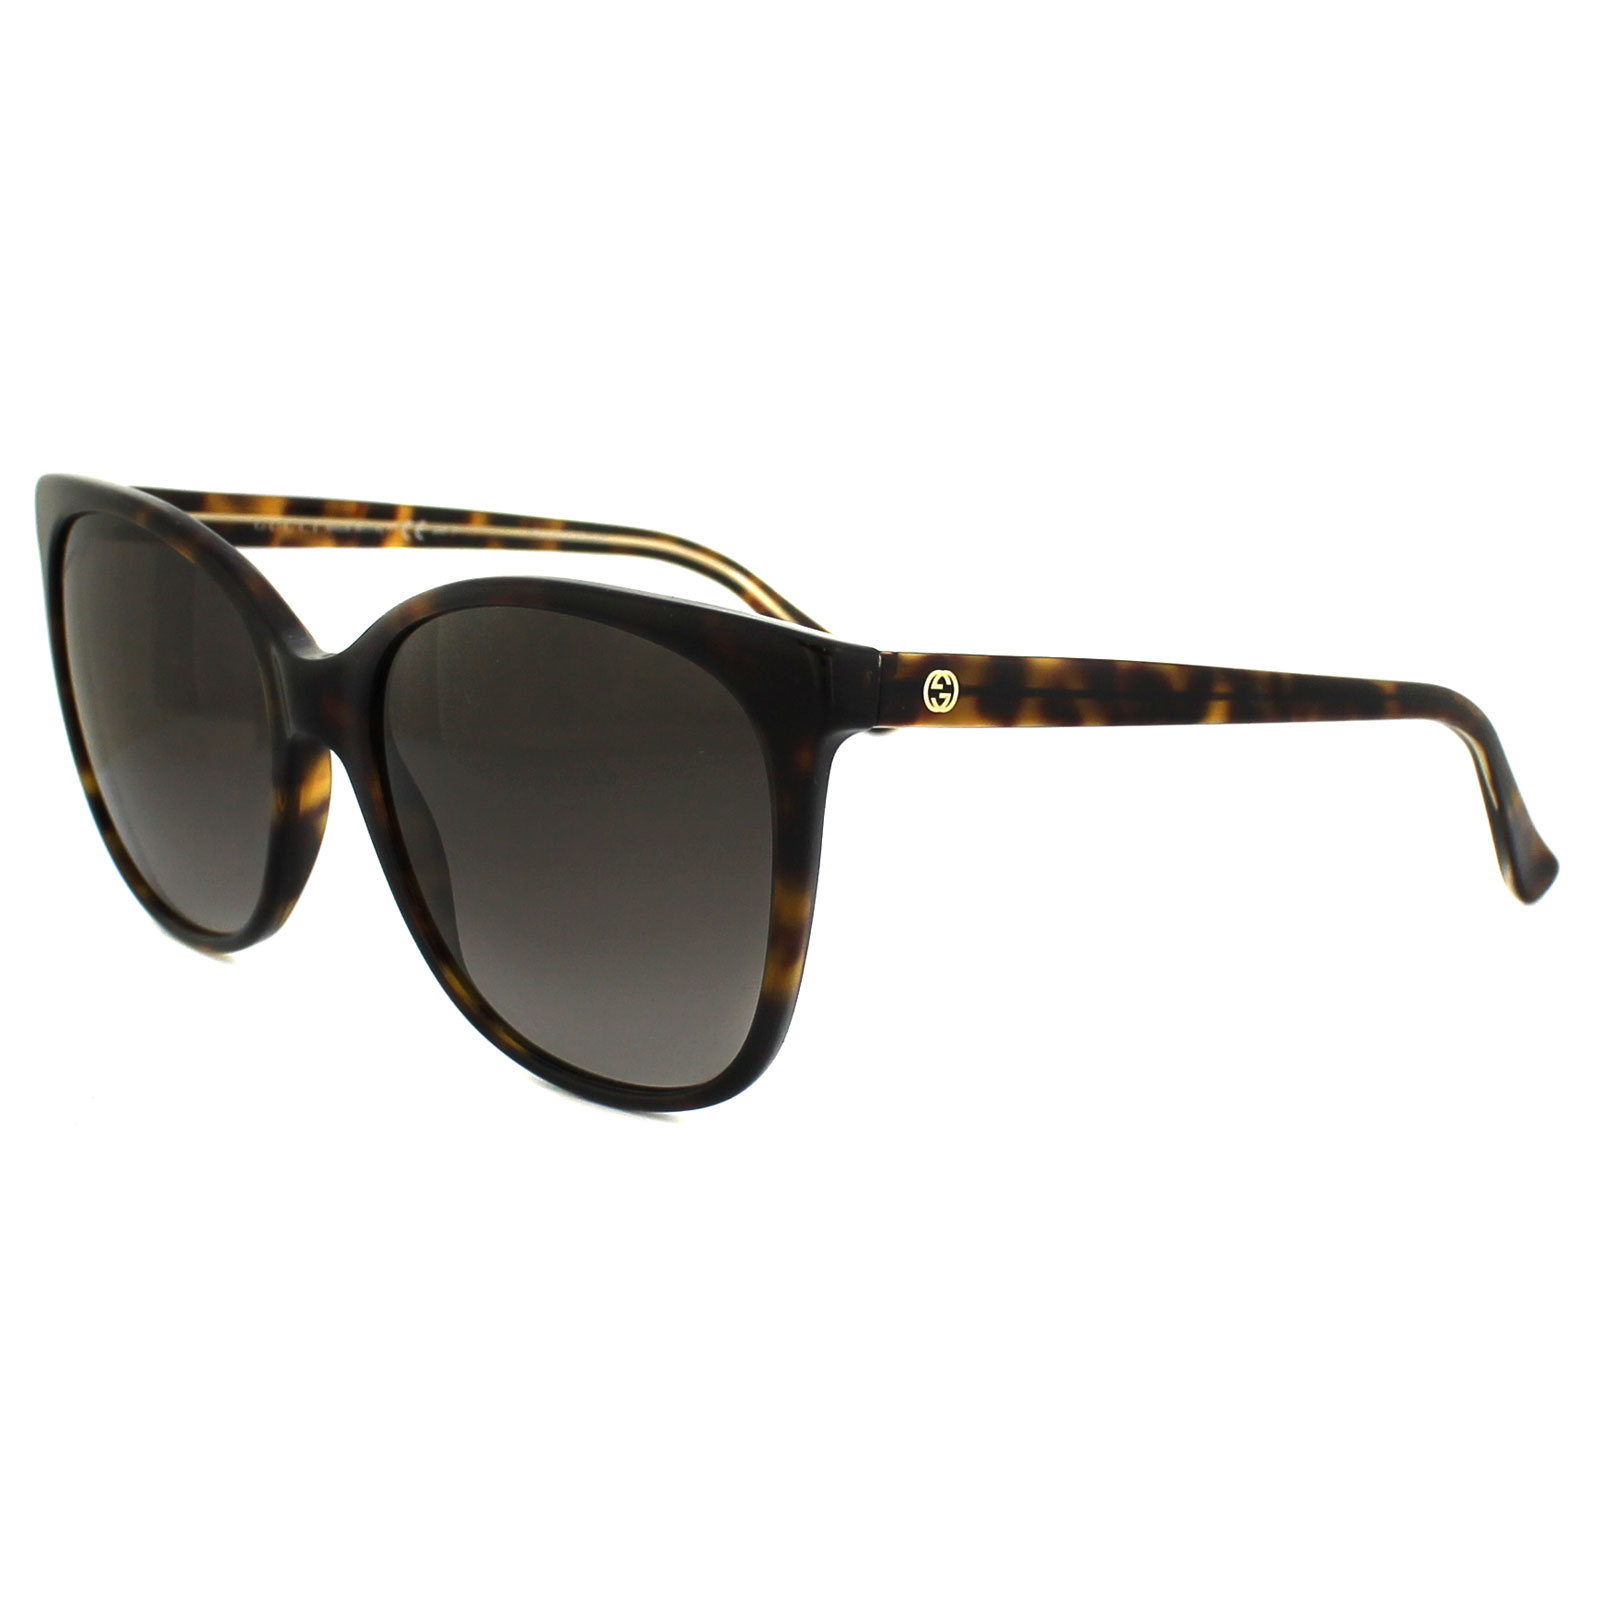 Cheap Gucci 3751 Sunglasses Discounted Sunglasses